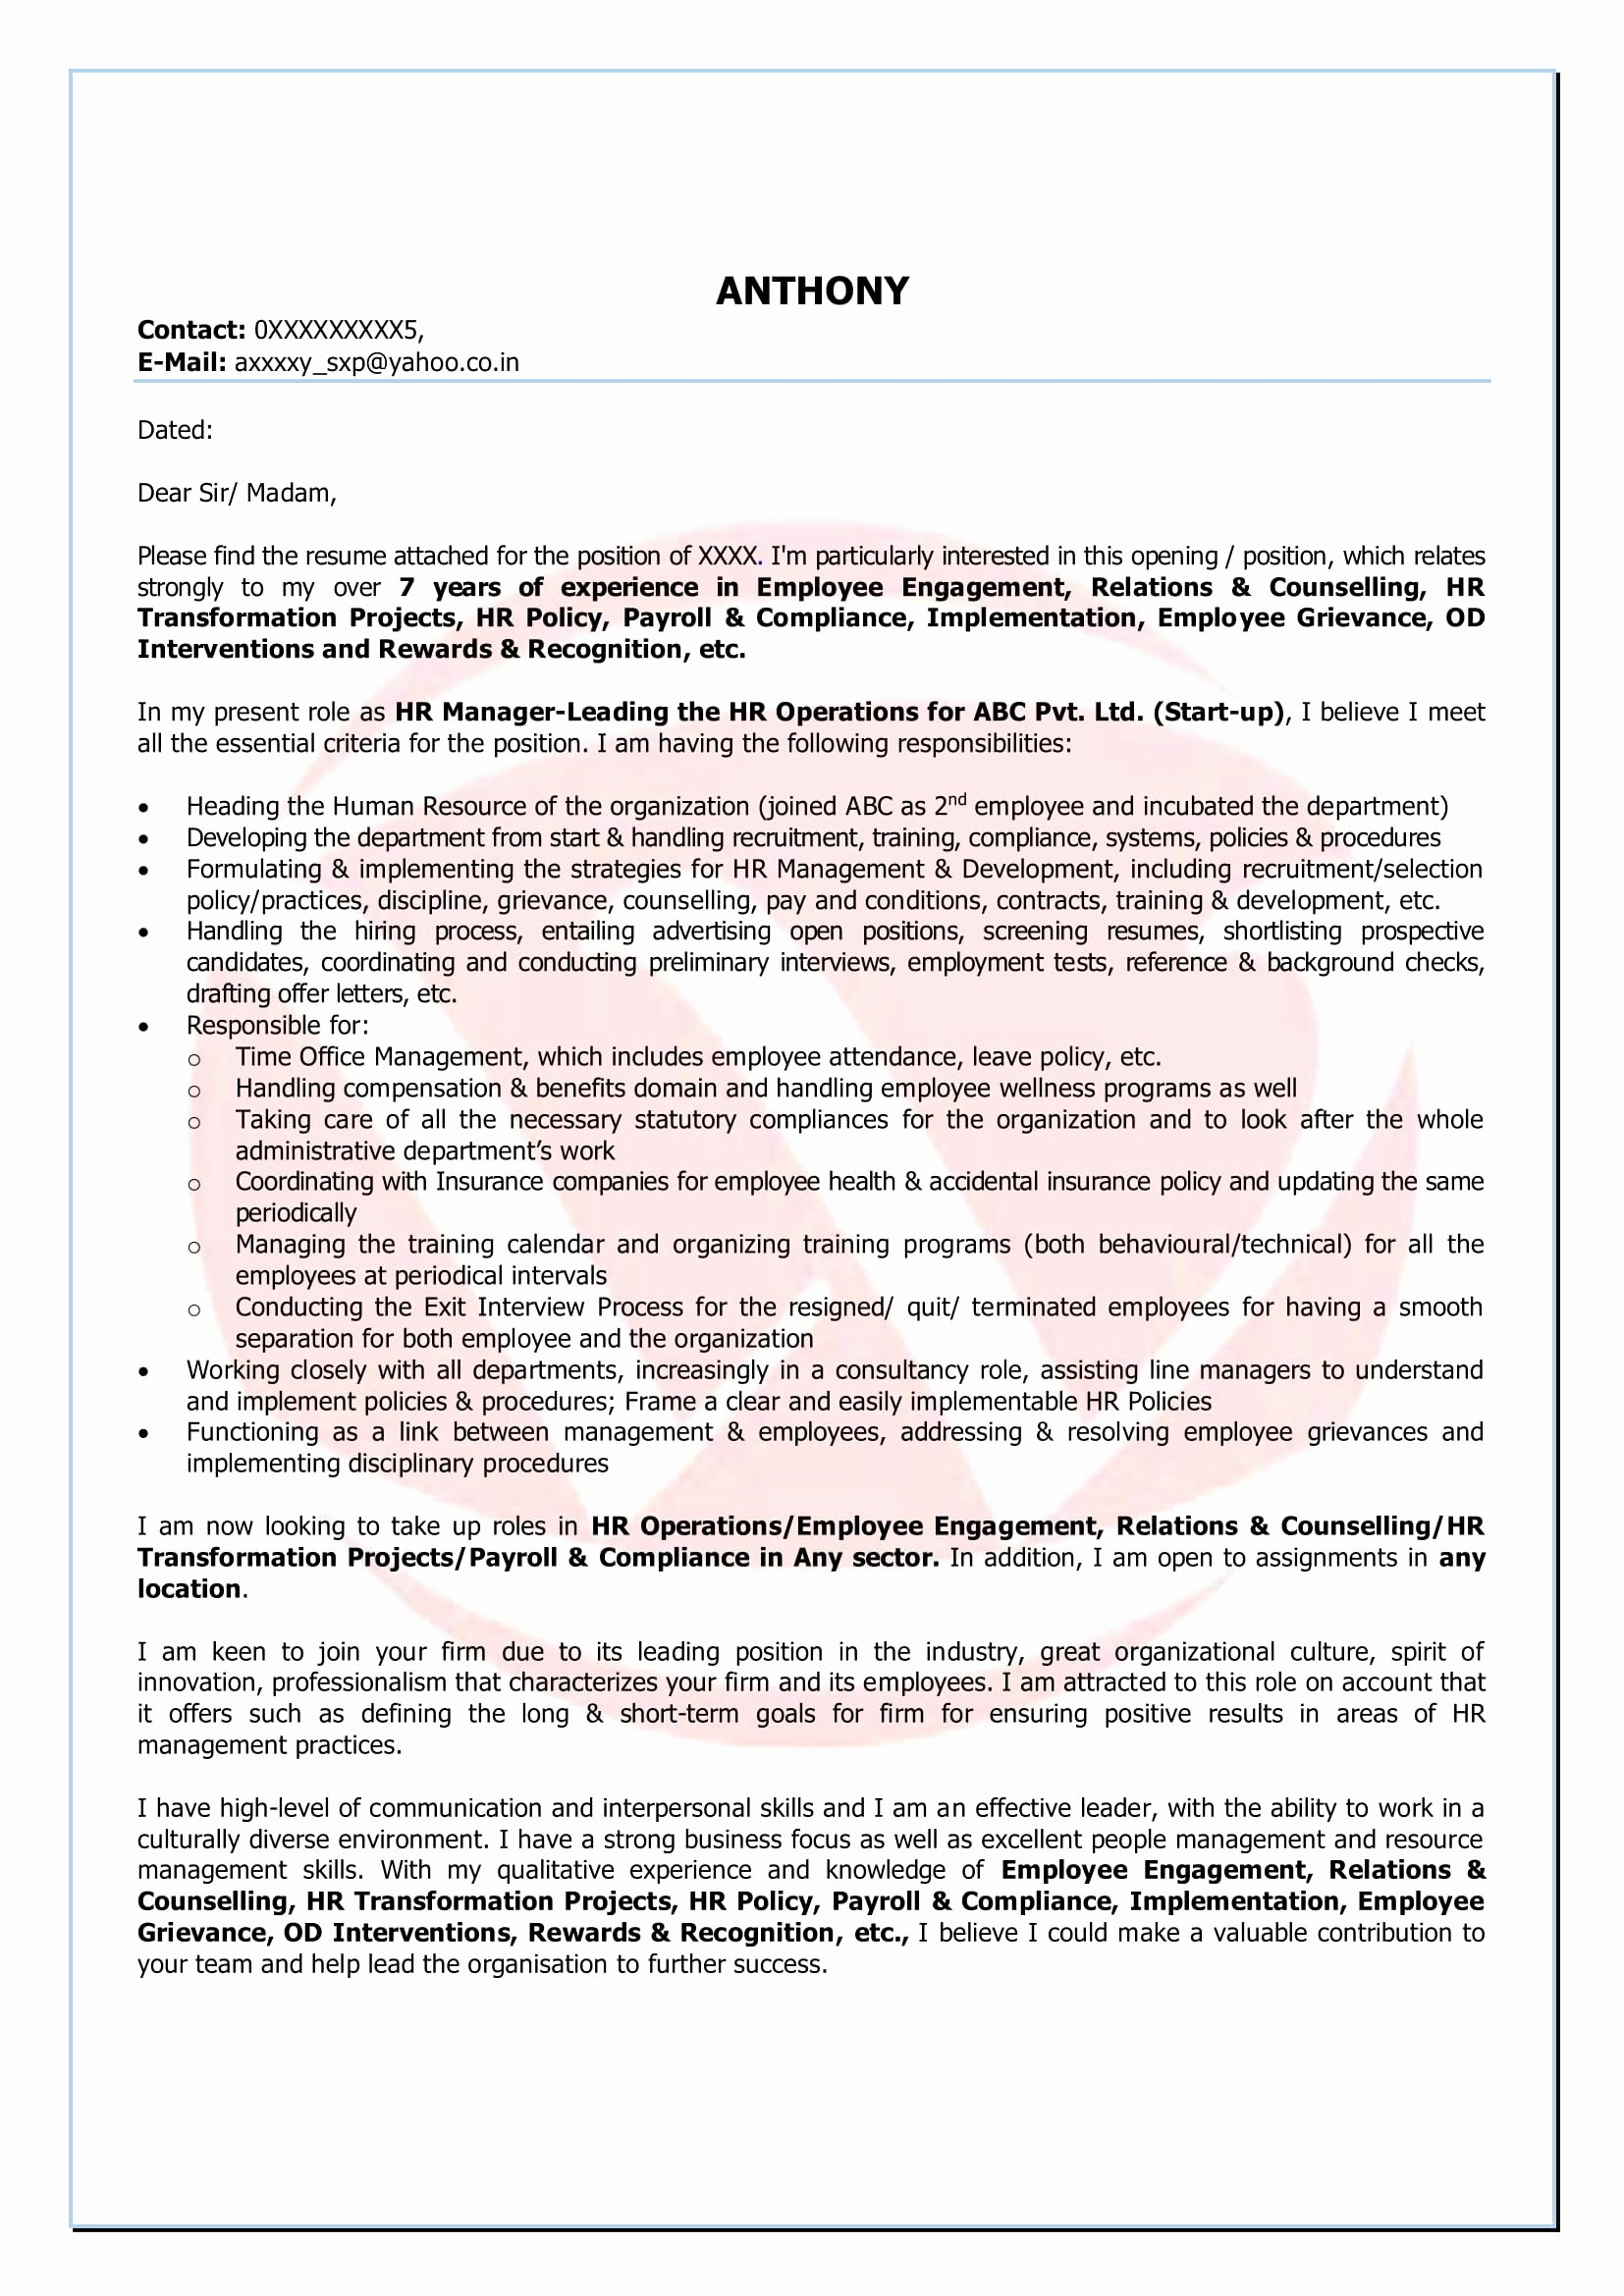 Open Enrollment Letter to Employees Beautiful Open Enrollment Template Letter Sample